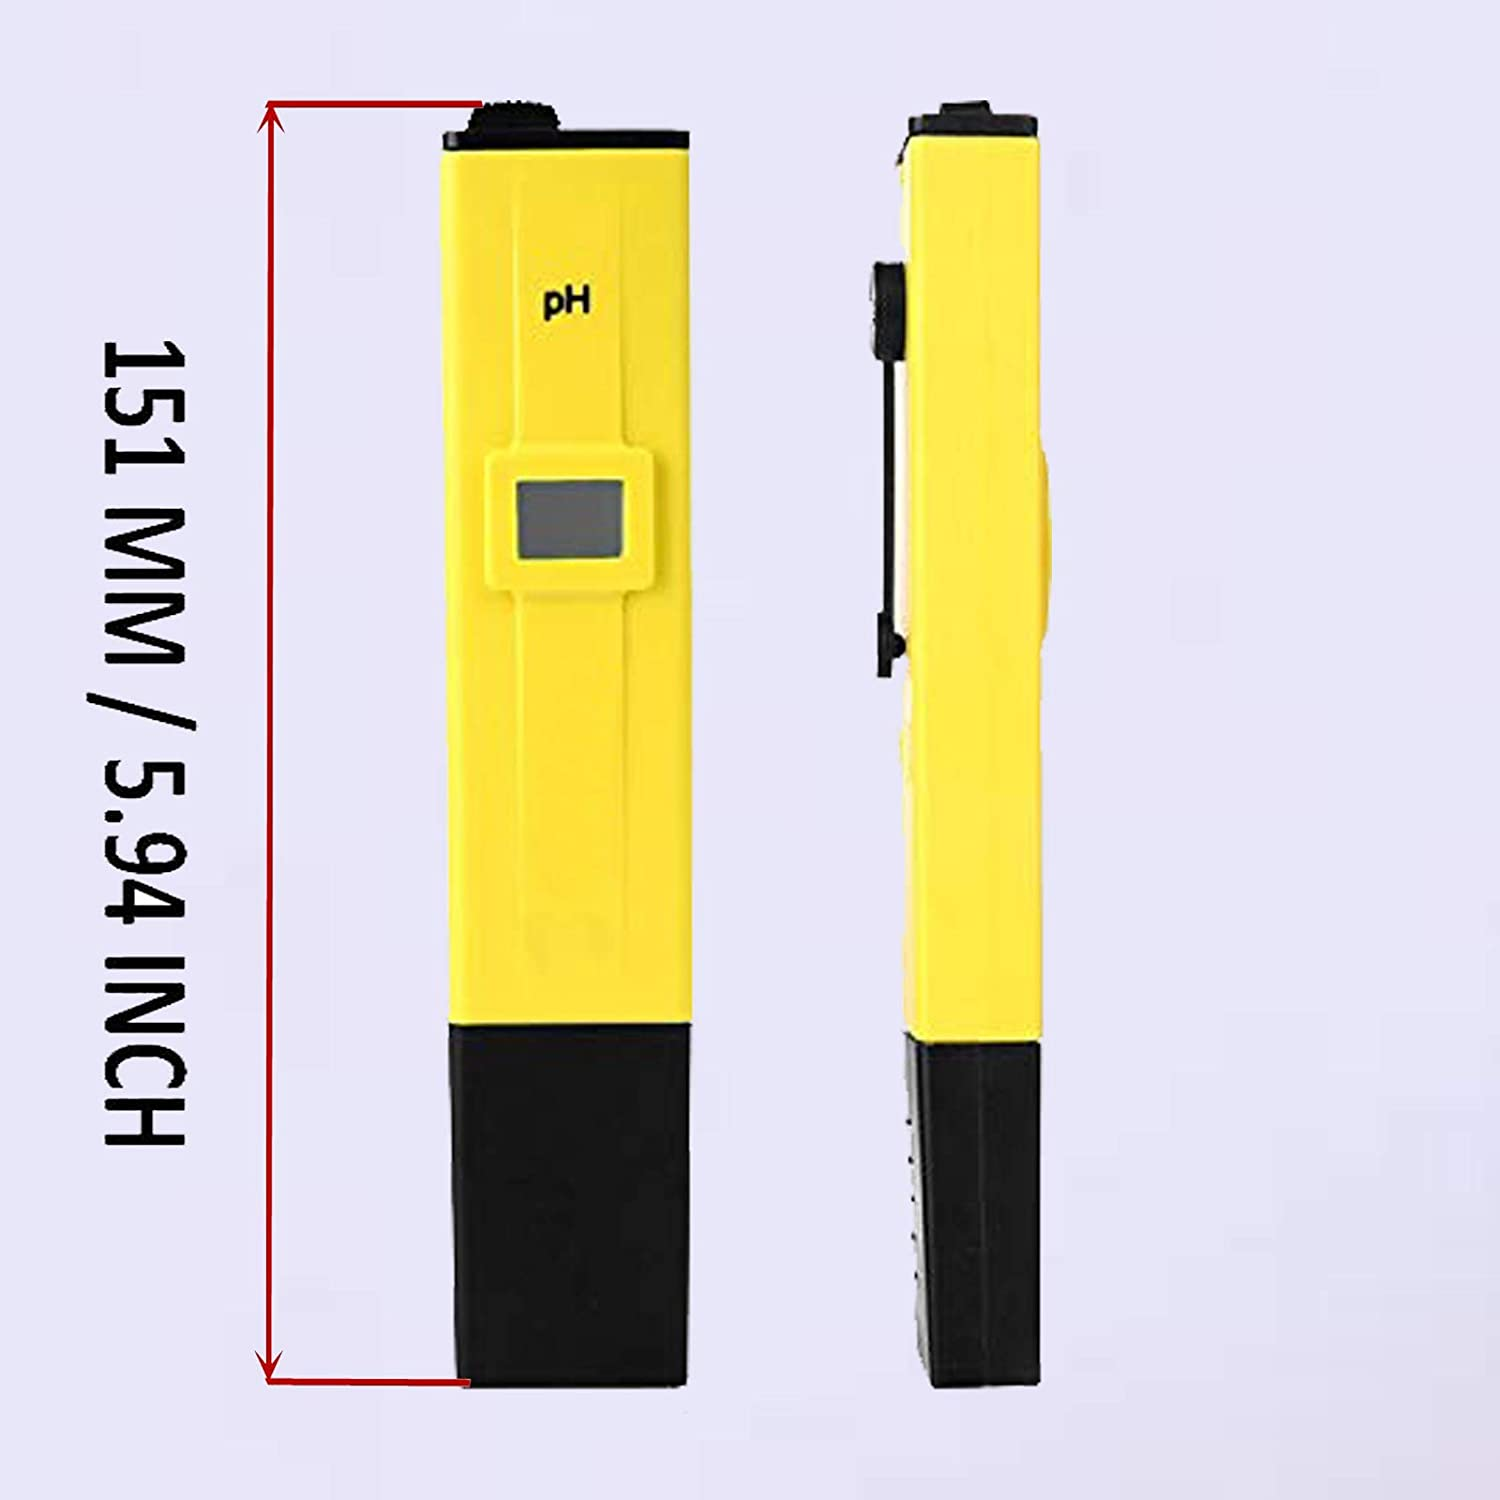 Food Beer Brewing Aquarium Water Quality Tester Soil High Accuracy and ATC x2 Calibration Packs Wine Urine Hydroponics Nutrient Digital pH Meter lab Pool pre calibrated for Water